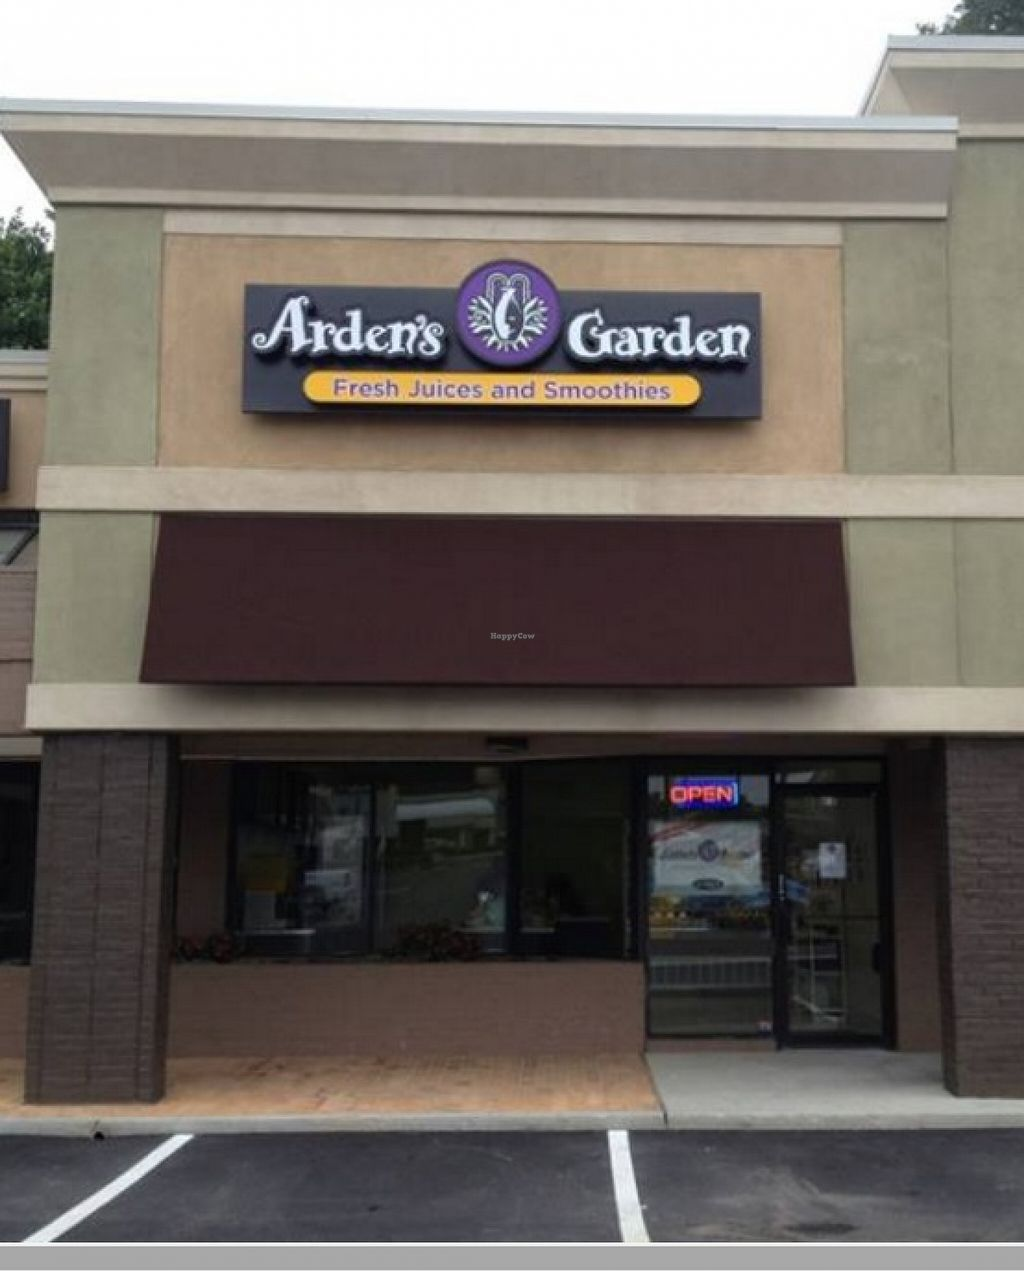 """Photo of Arden's Garden  by <a href=""""/members/profile/community"""">community</a> <br/>Arden's Garden <br/> April 19, 2016  - <a href='/contact/abuse/image/69731/145194'>Report</a>"""